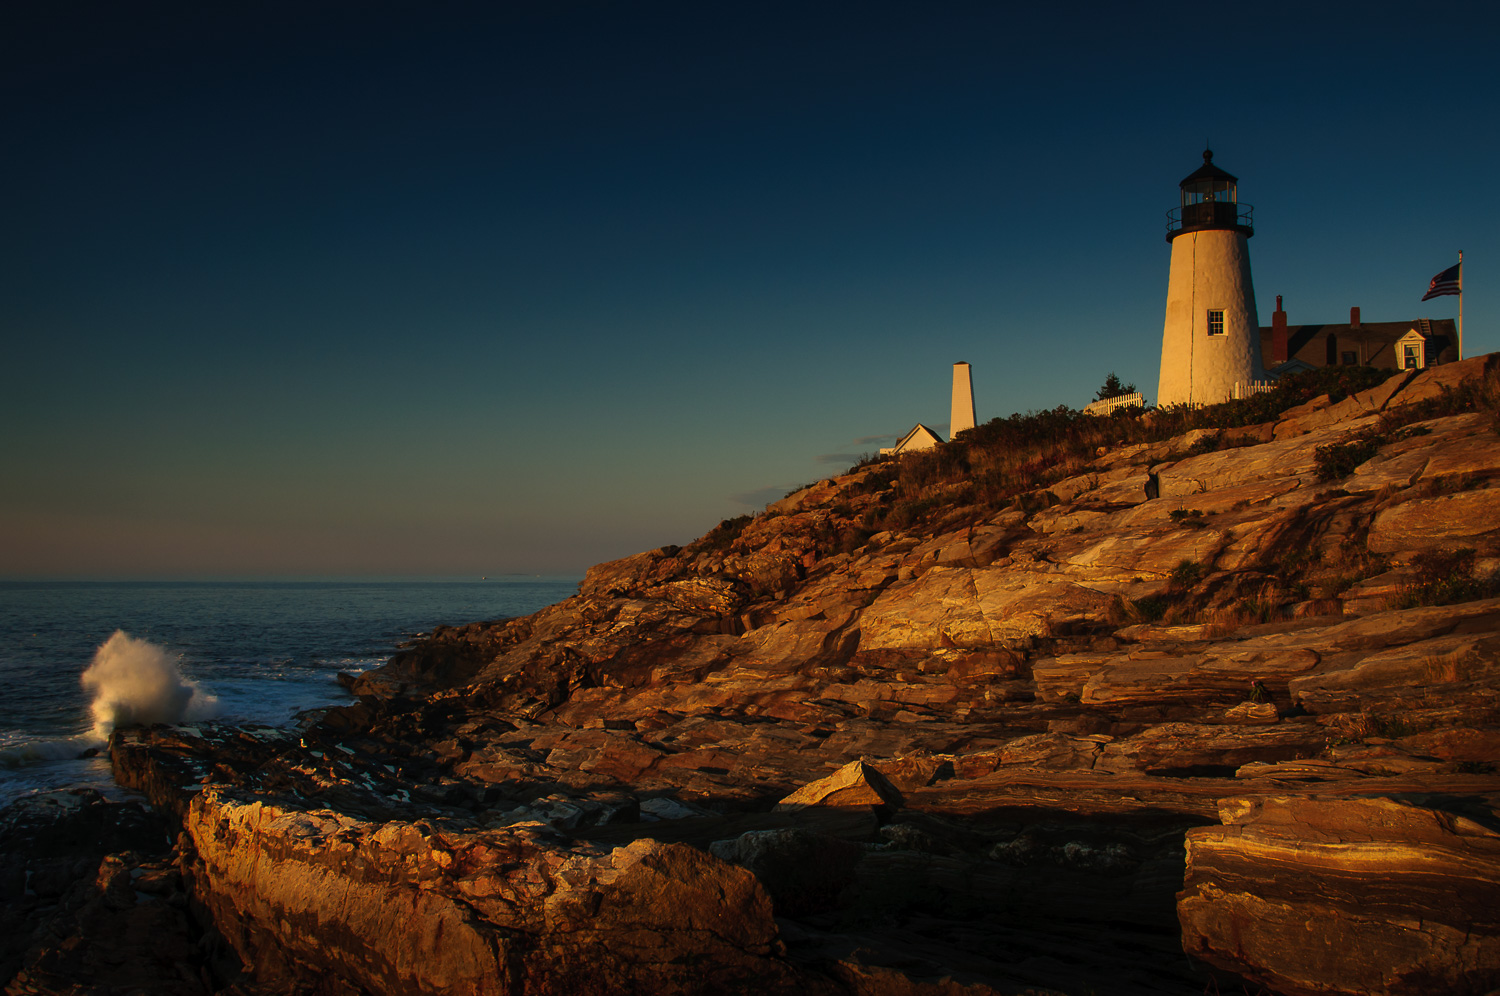 MORNING GLOW AT PEMAQUID LIGHT